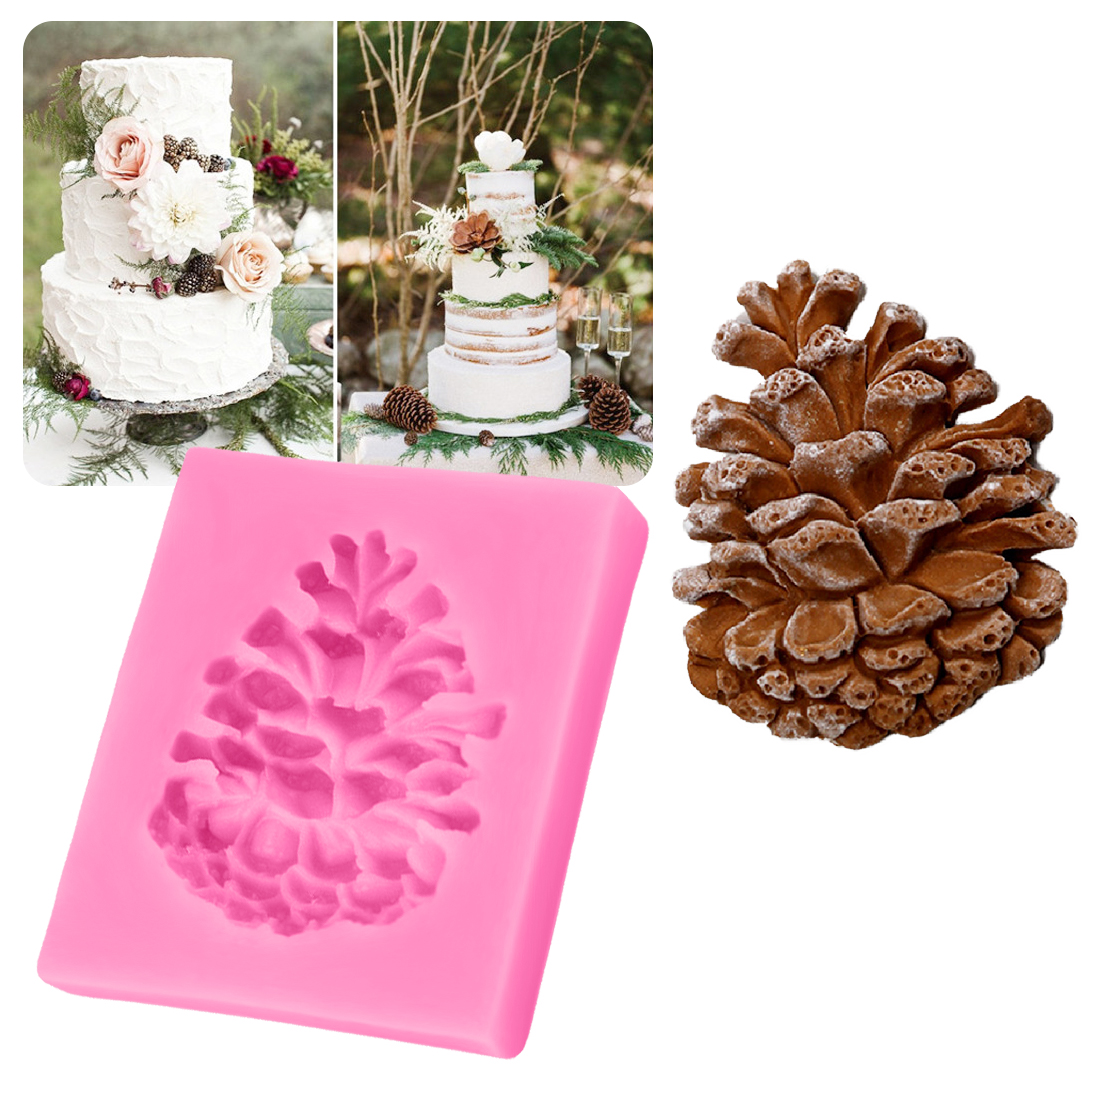 Buy pine cones cake and get free shipping on AliExpress.com